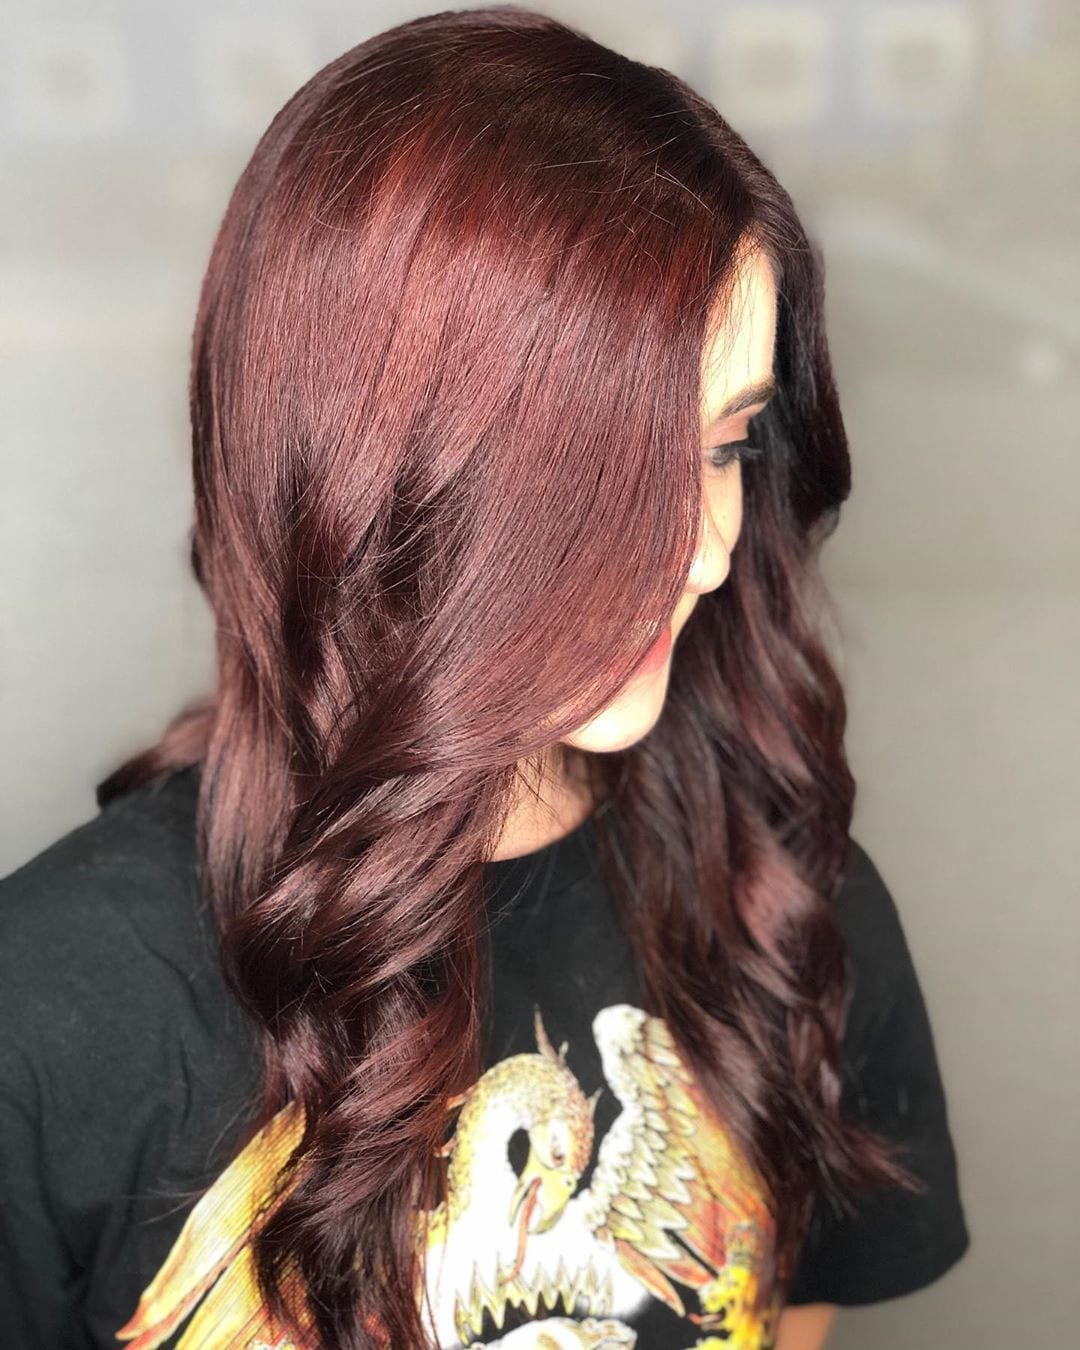 woman with long curly cherry cola hair